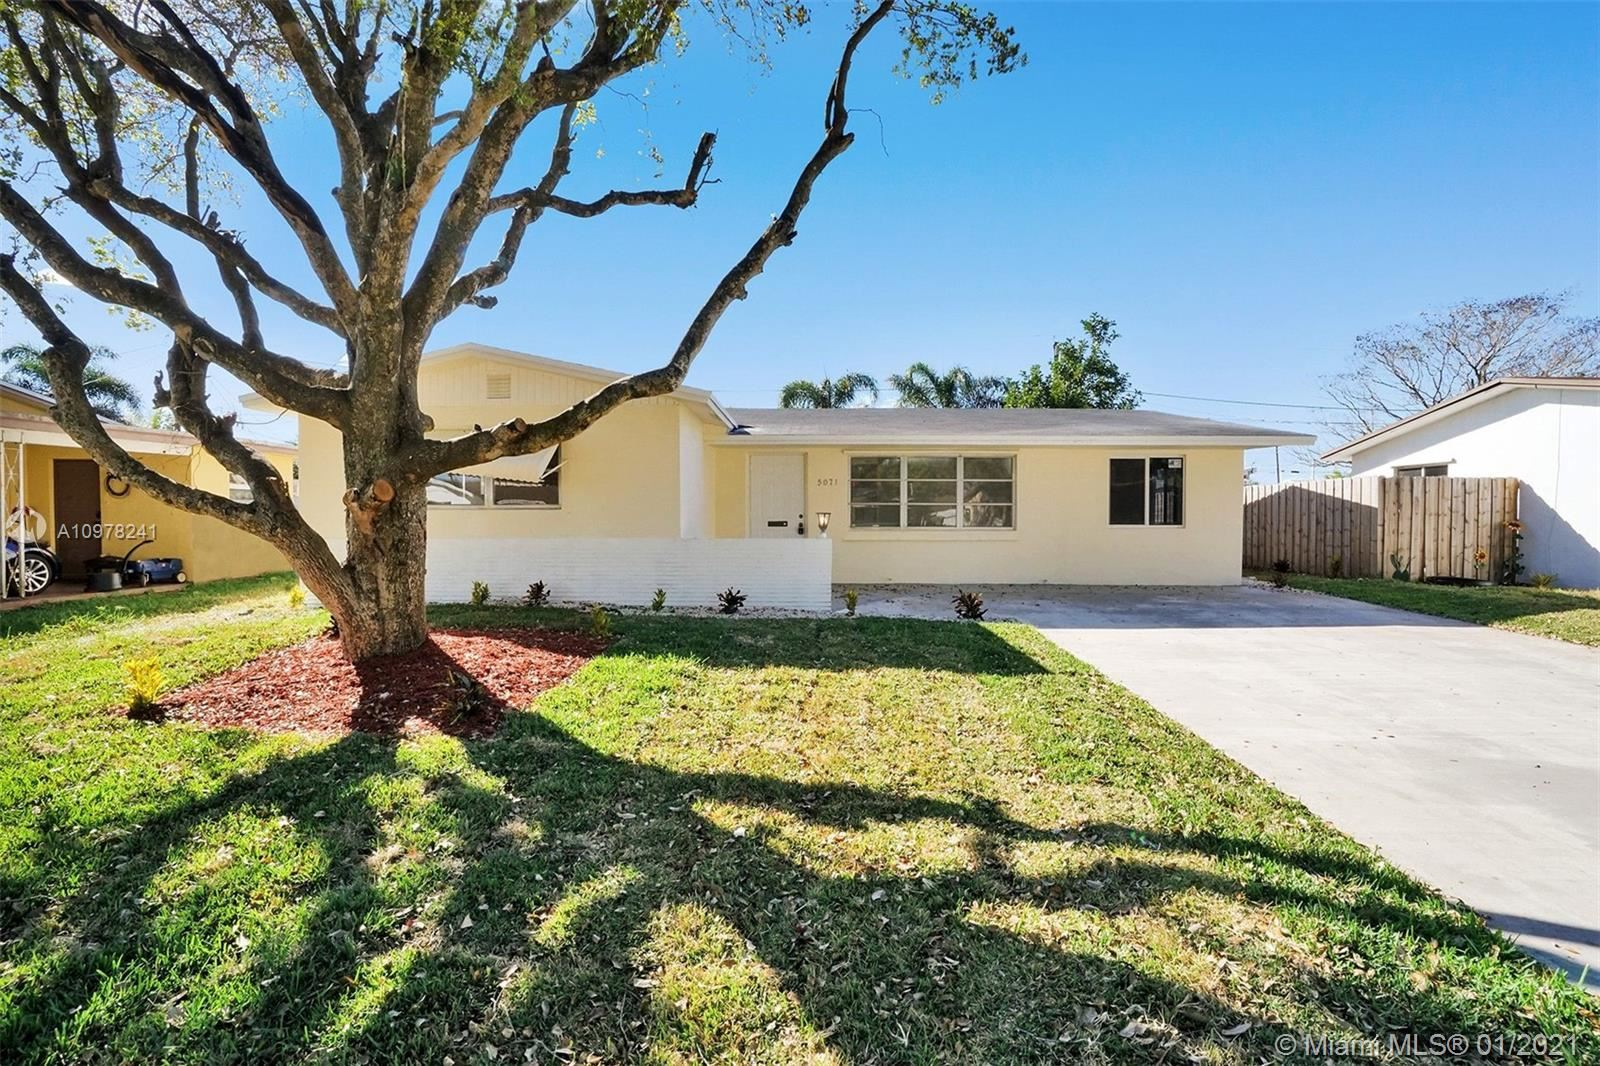 5071 SW 94th Way, Cooper City, FL 33328 - #: A10978241